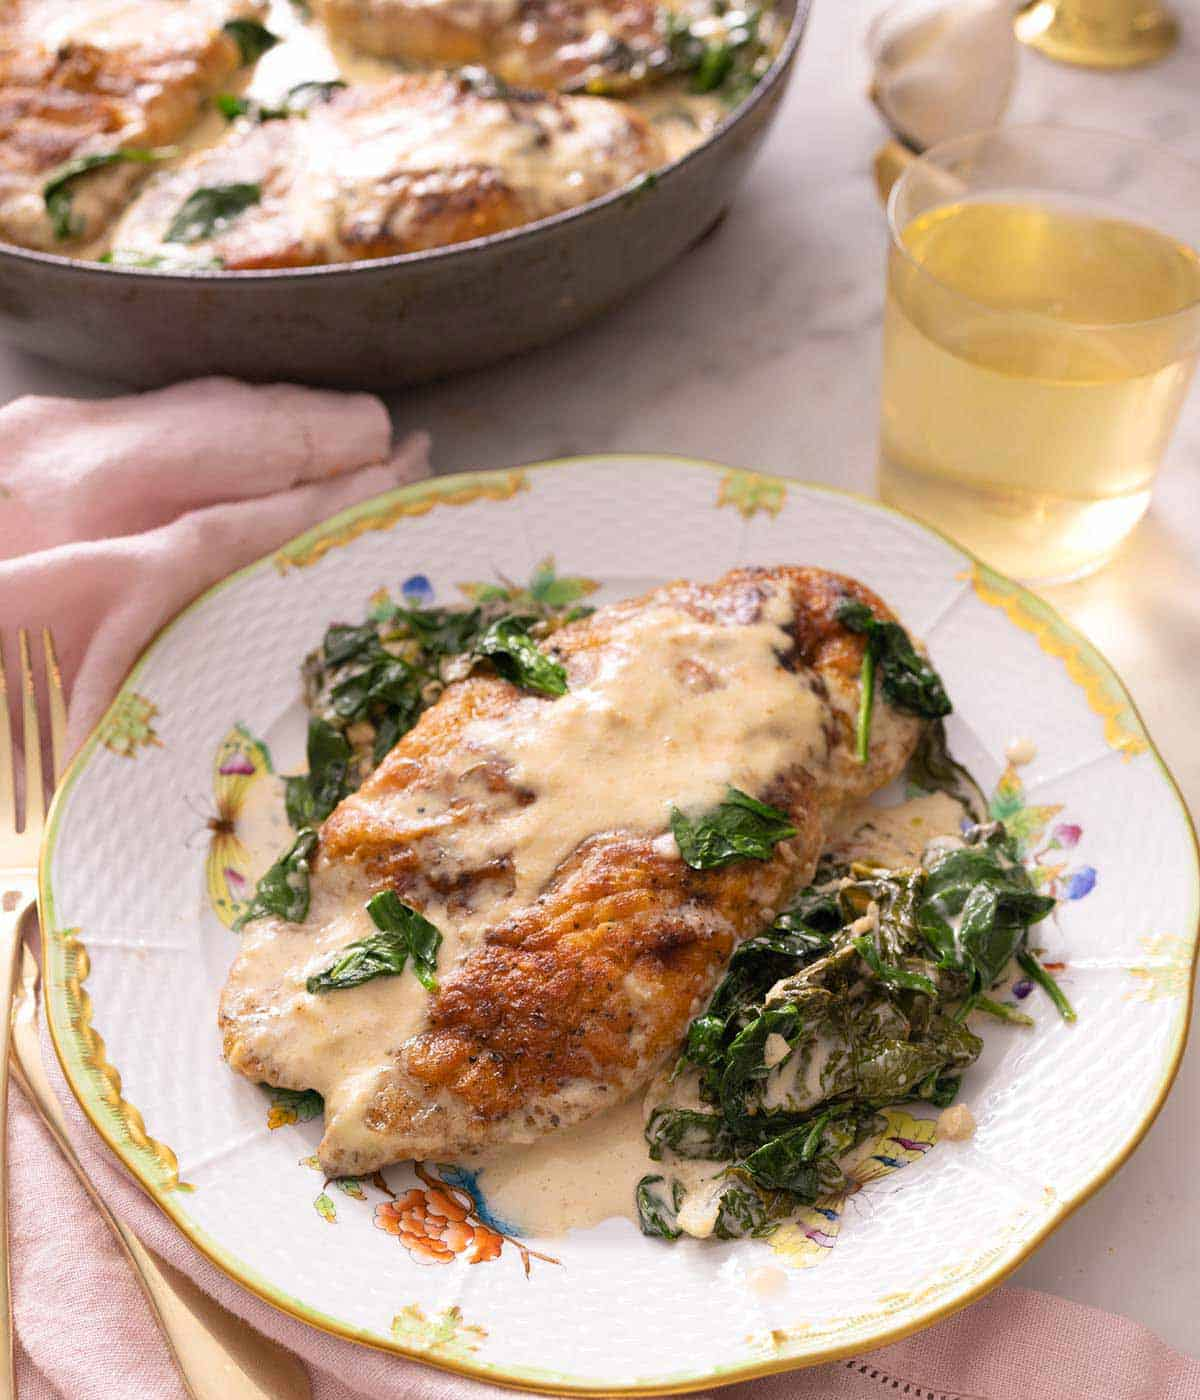 A plate of chicken florentine with the chicken breast coated in sauce and spinach.